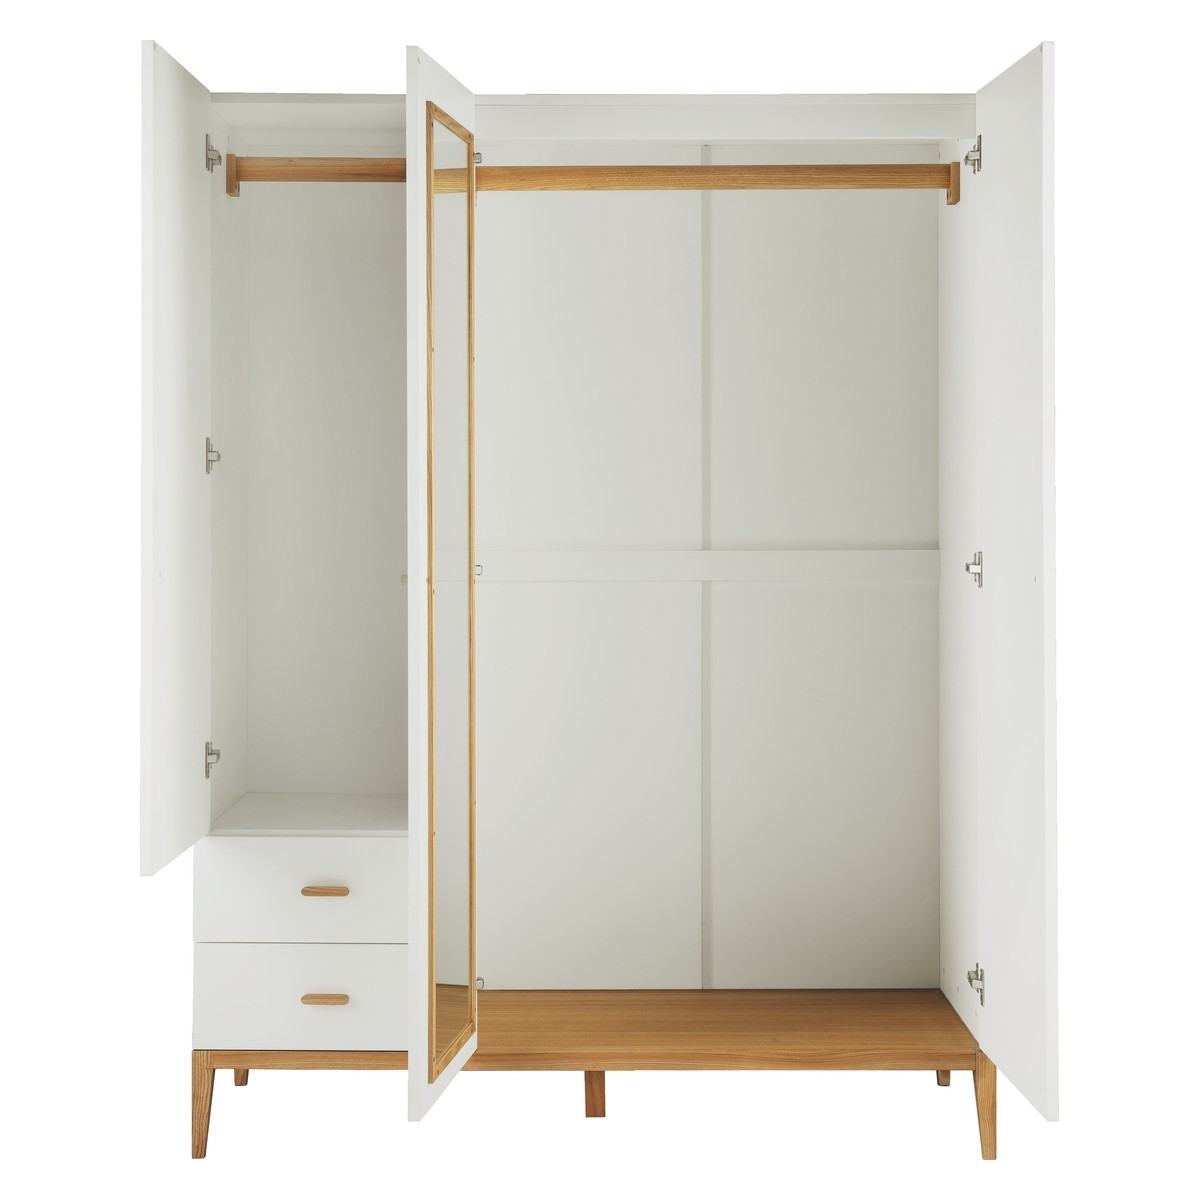 Buy Now At Habitat Uk Intended For Most Recent Triple Door Wardrobes (View 2 of 15)